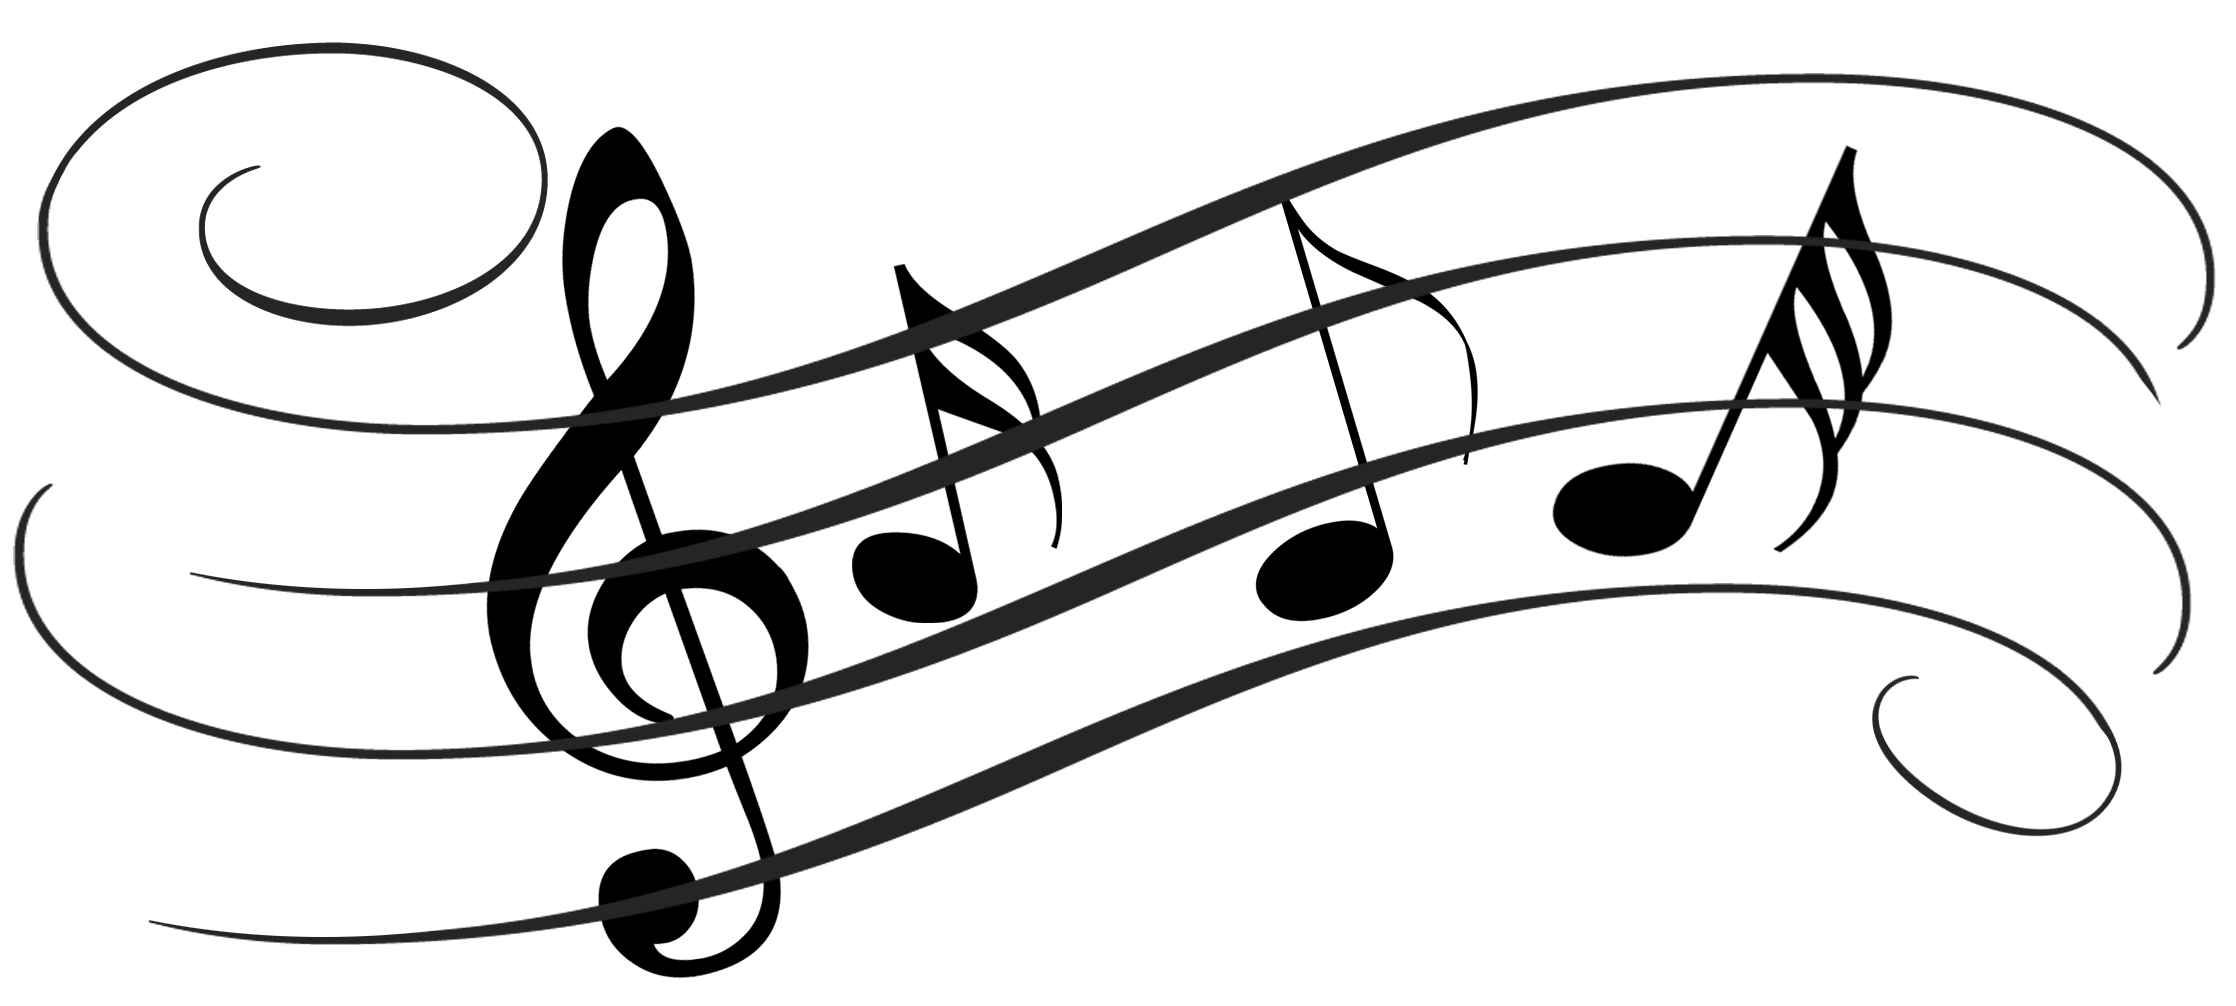 Music Notes Clip Art Free Clipart Images